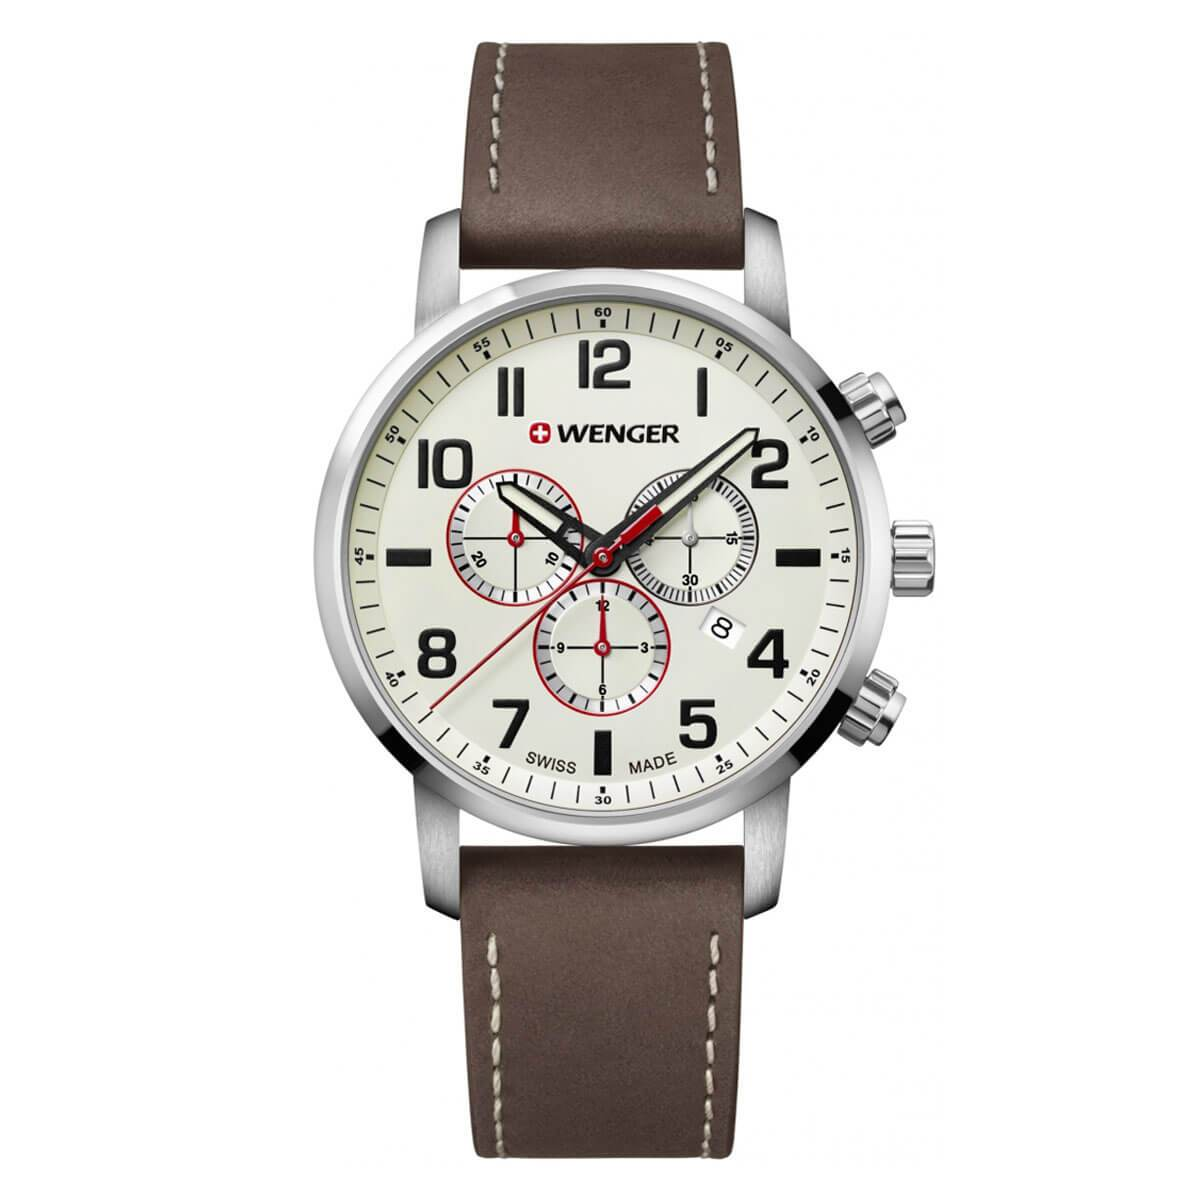 The Path Less Traveled #30: Timex Men's Expedition Scout Chronograph 42mm Watch Review Timex Expedition Chronograph Chronograph Review Scout TW4B044009J